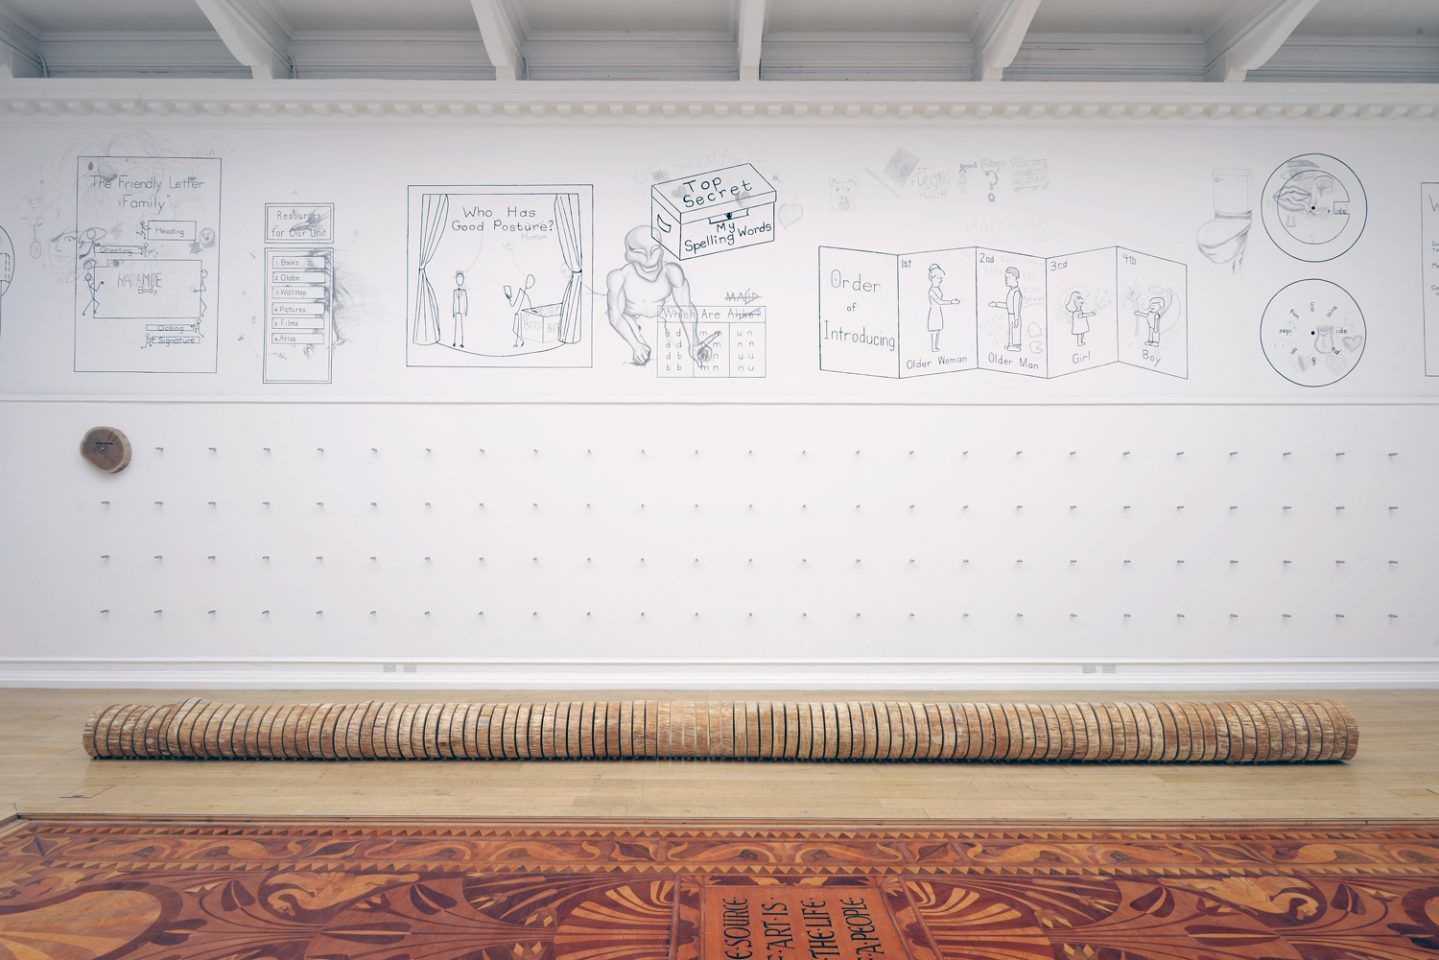 Installation view from Roman Ondak's The Source of Art is in the Life of a People, in the Main Galleries. Courtesy the artist, kurimanzutto, Esther Schipper, gb agency, Martin Janda. Photo: Andy Keate.